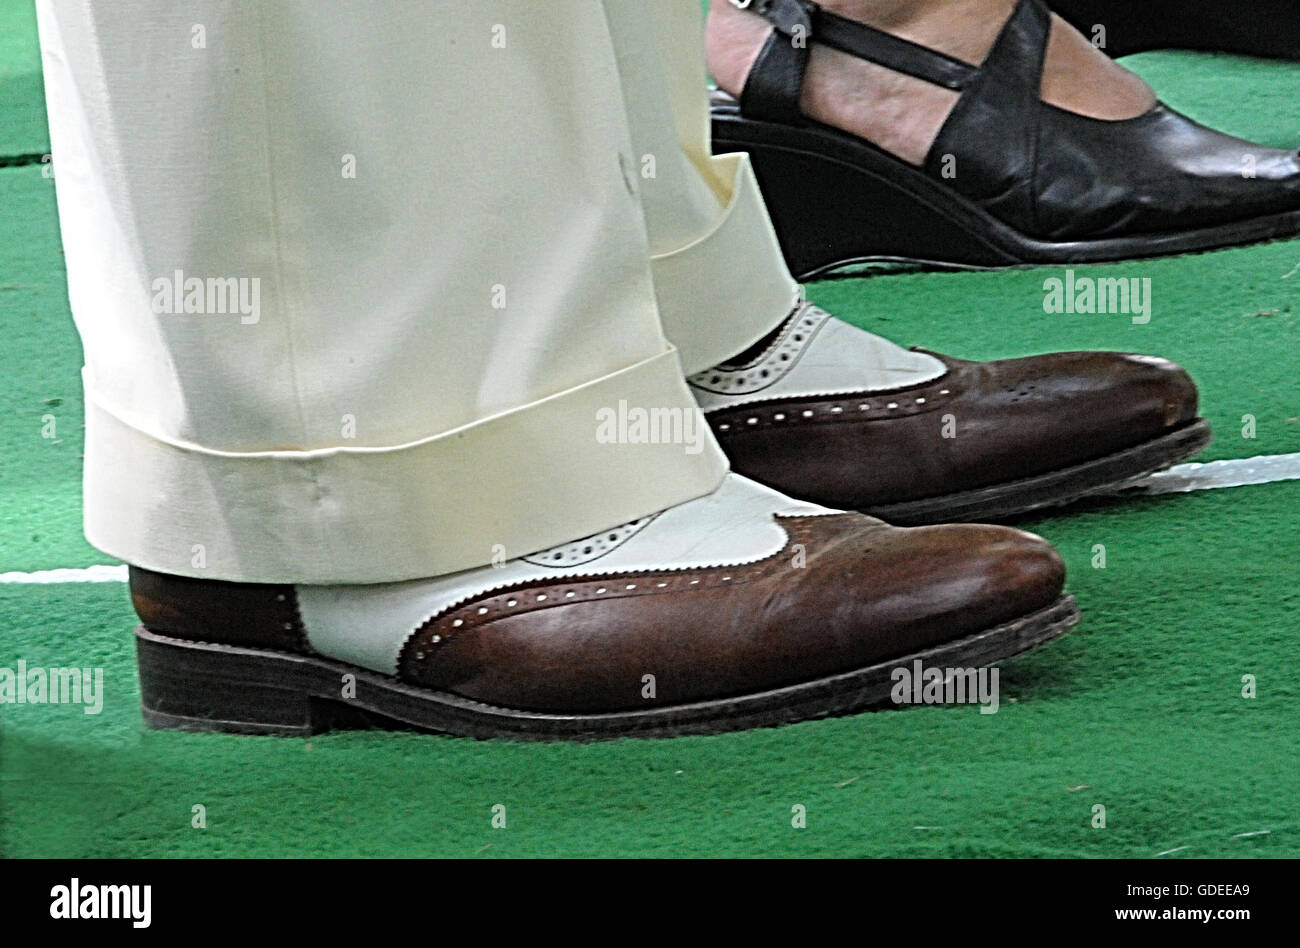 Two tone brogues and Oxford bags, on display at the Chap Olympiad, Bedford Square, London. - Stock Image